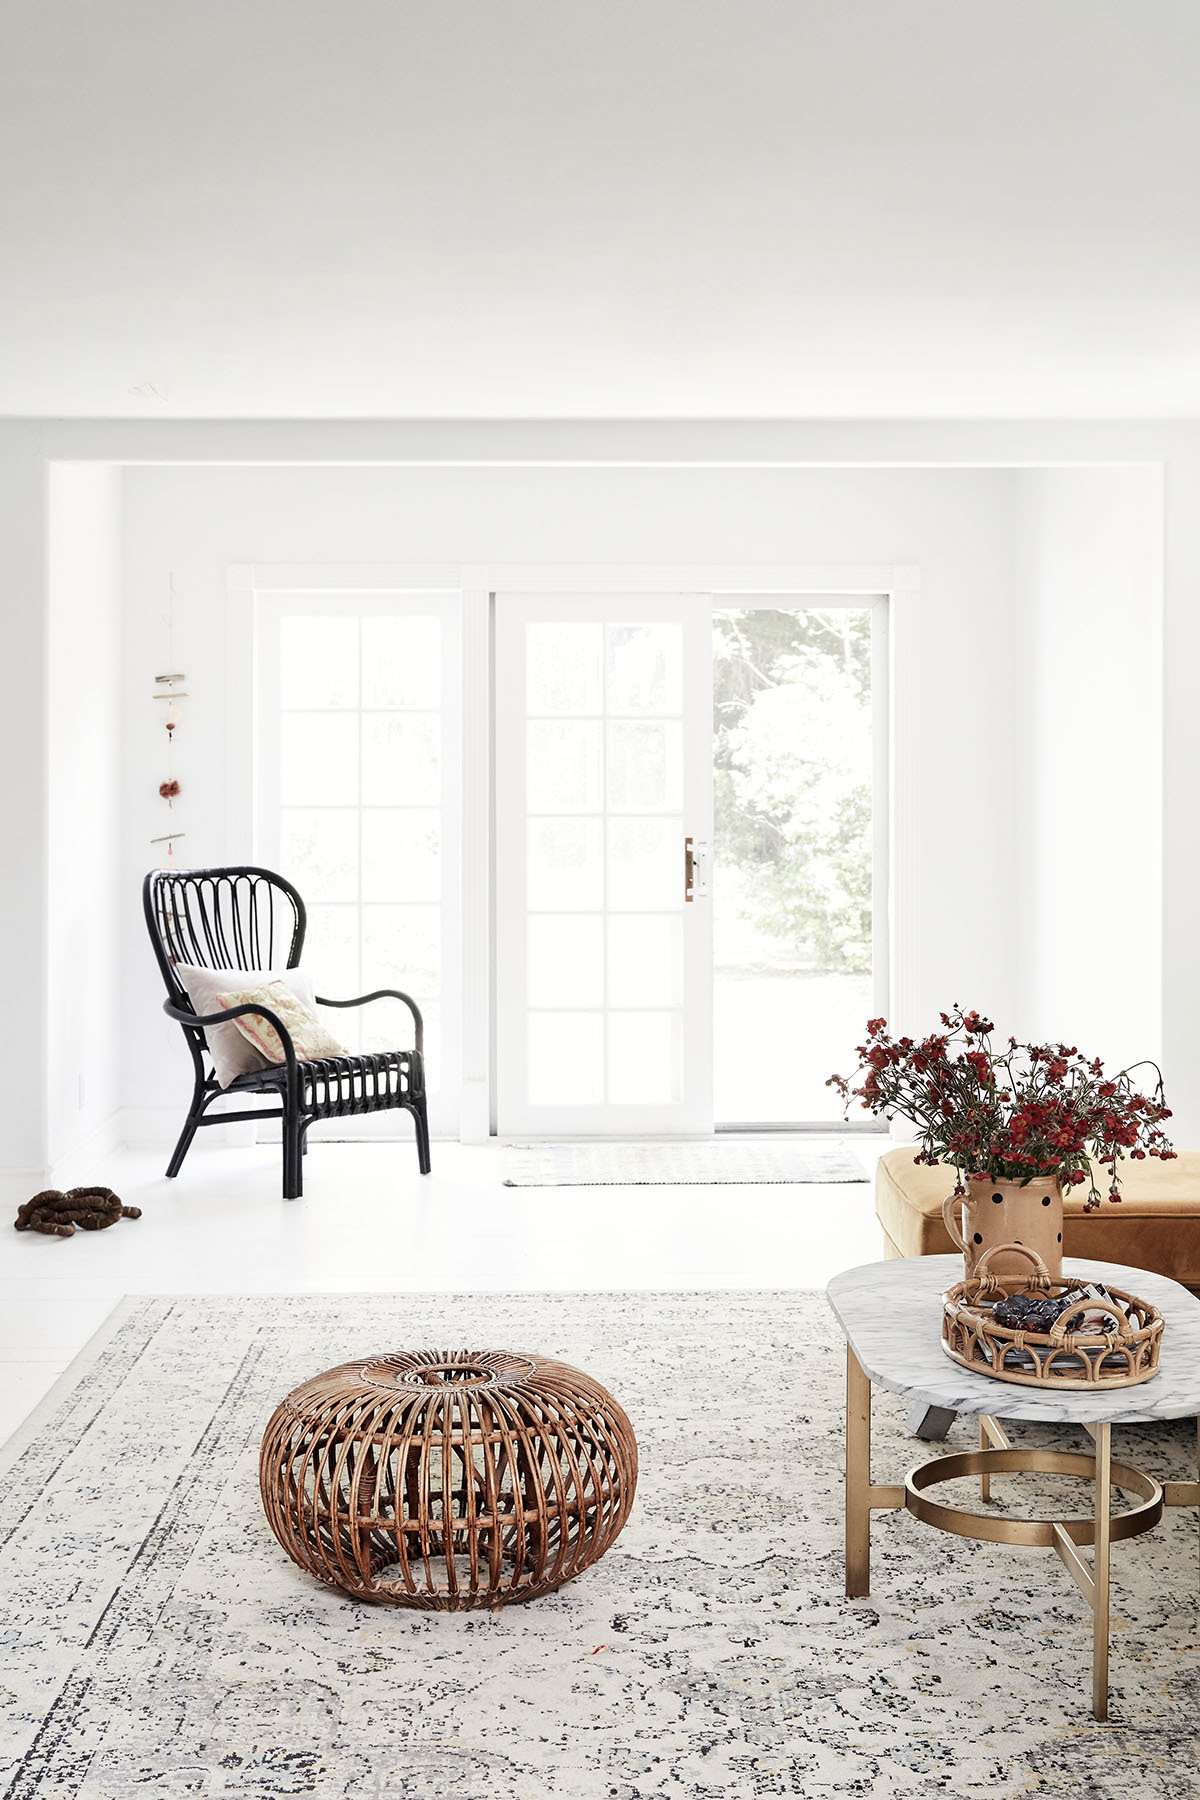 Expansive sitting rooms, repurposed furniture, and white walls and floorboards create an almost gallery-like appeal. IKEA Armchair | Franco Albini Vintage Ottoman | West Elm Coffee Table | Target Tray | Craigslist Vintage Rug.